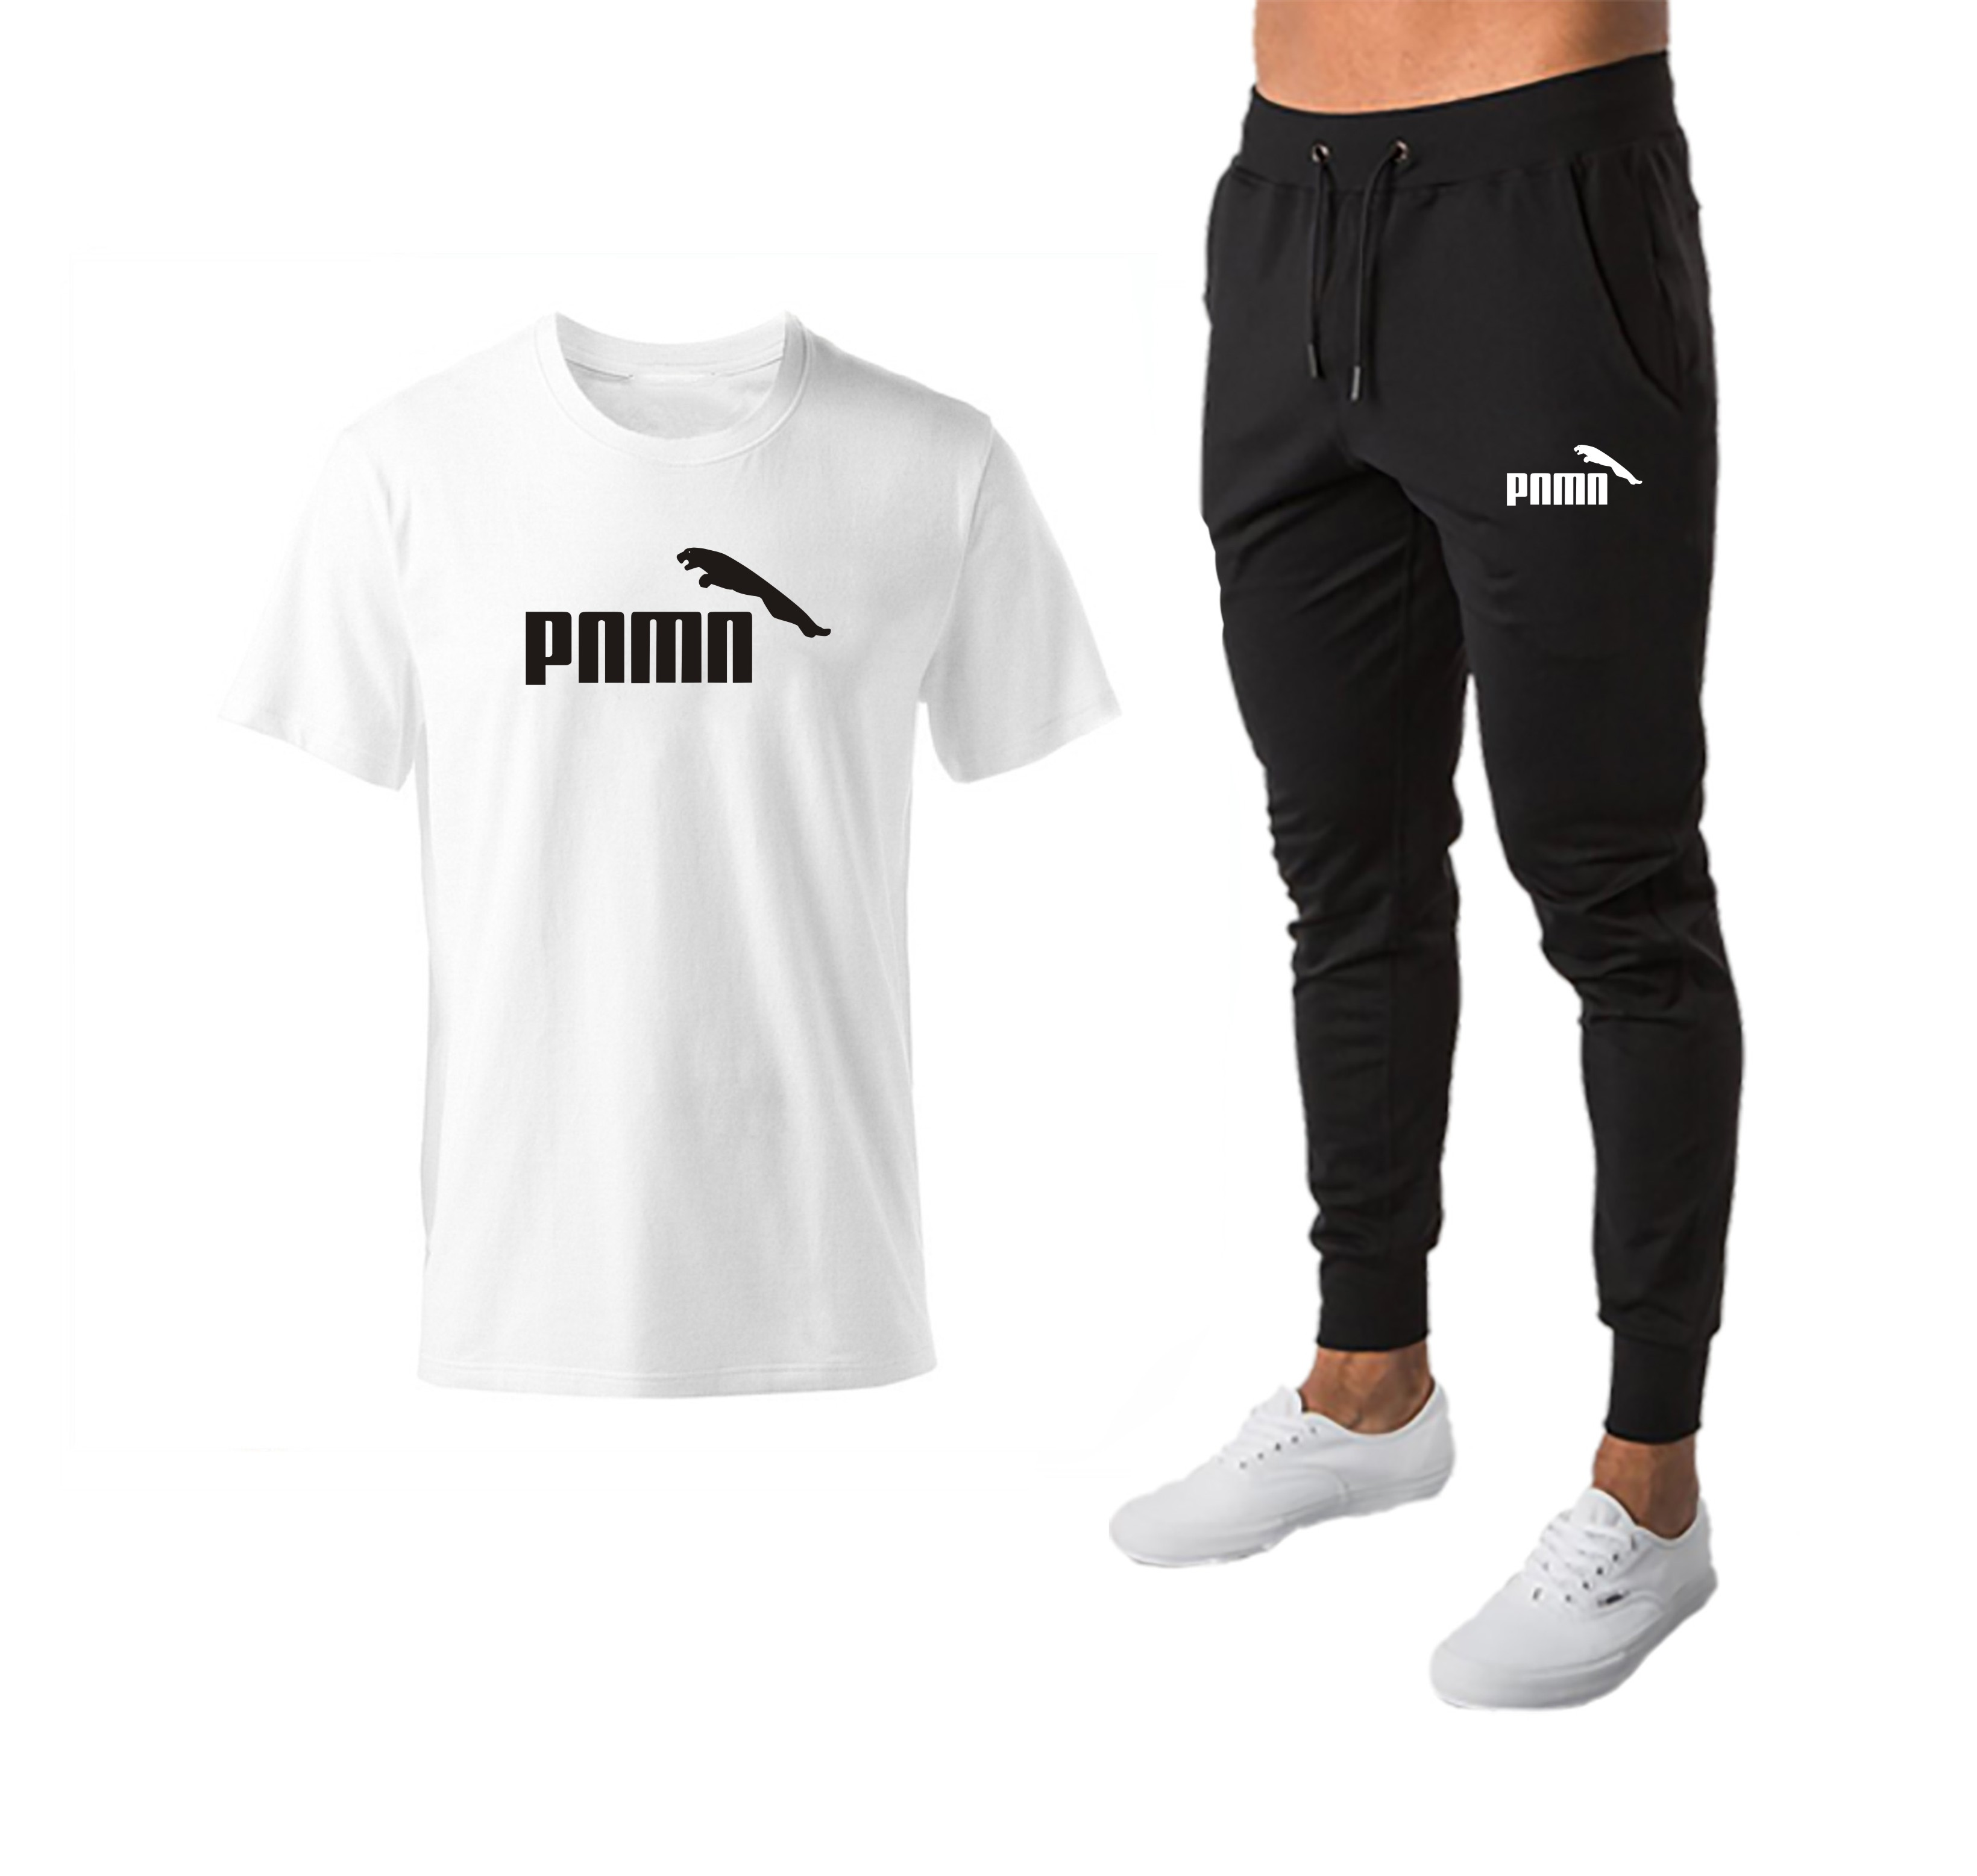 High Quality Men's Tracksuit Gym T-shirt + Trousers Fitness Sports Suit Clothes Running Jogging Sport Wear Exercise Workout Set